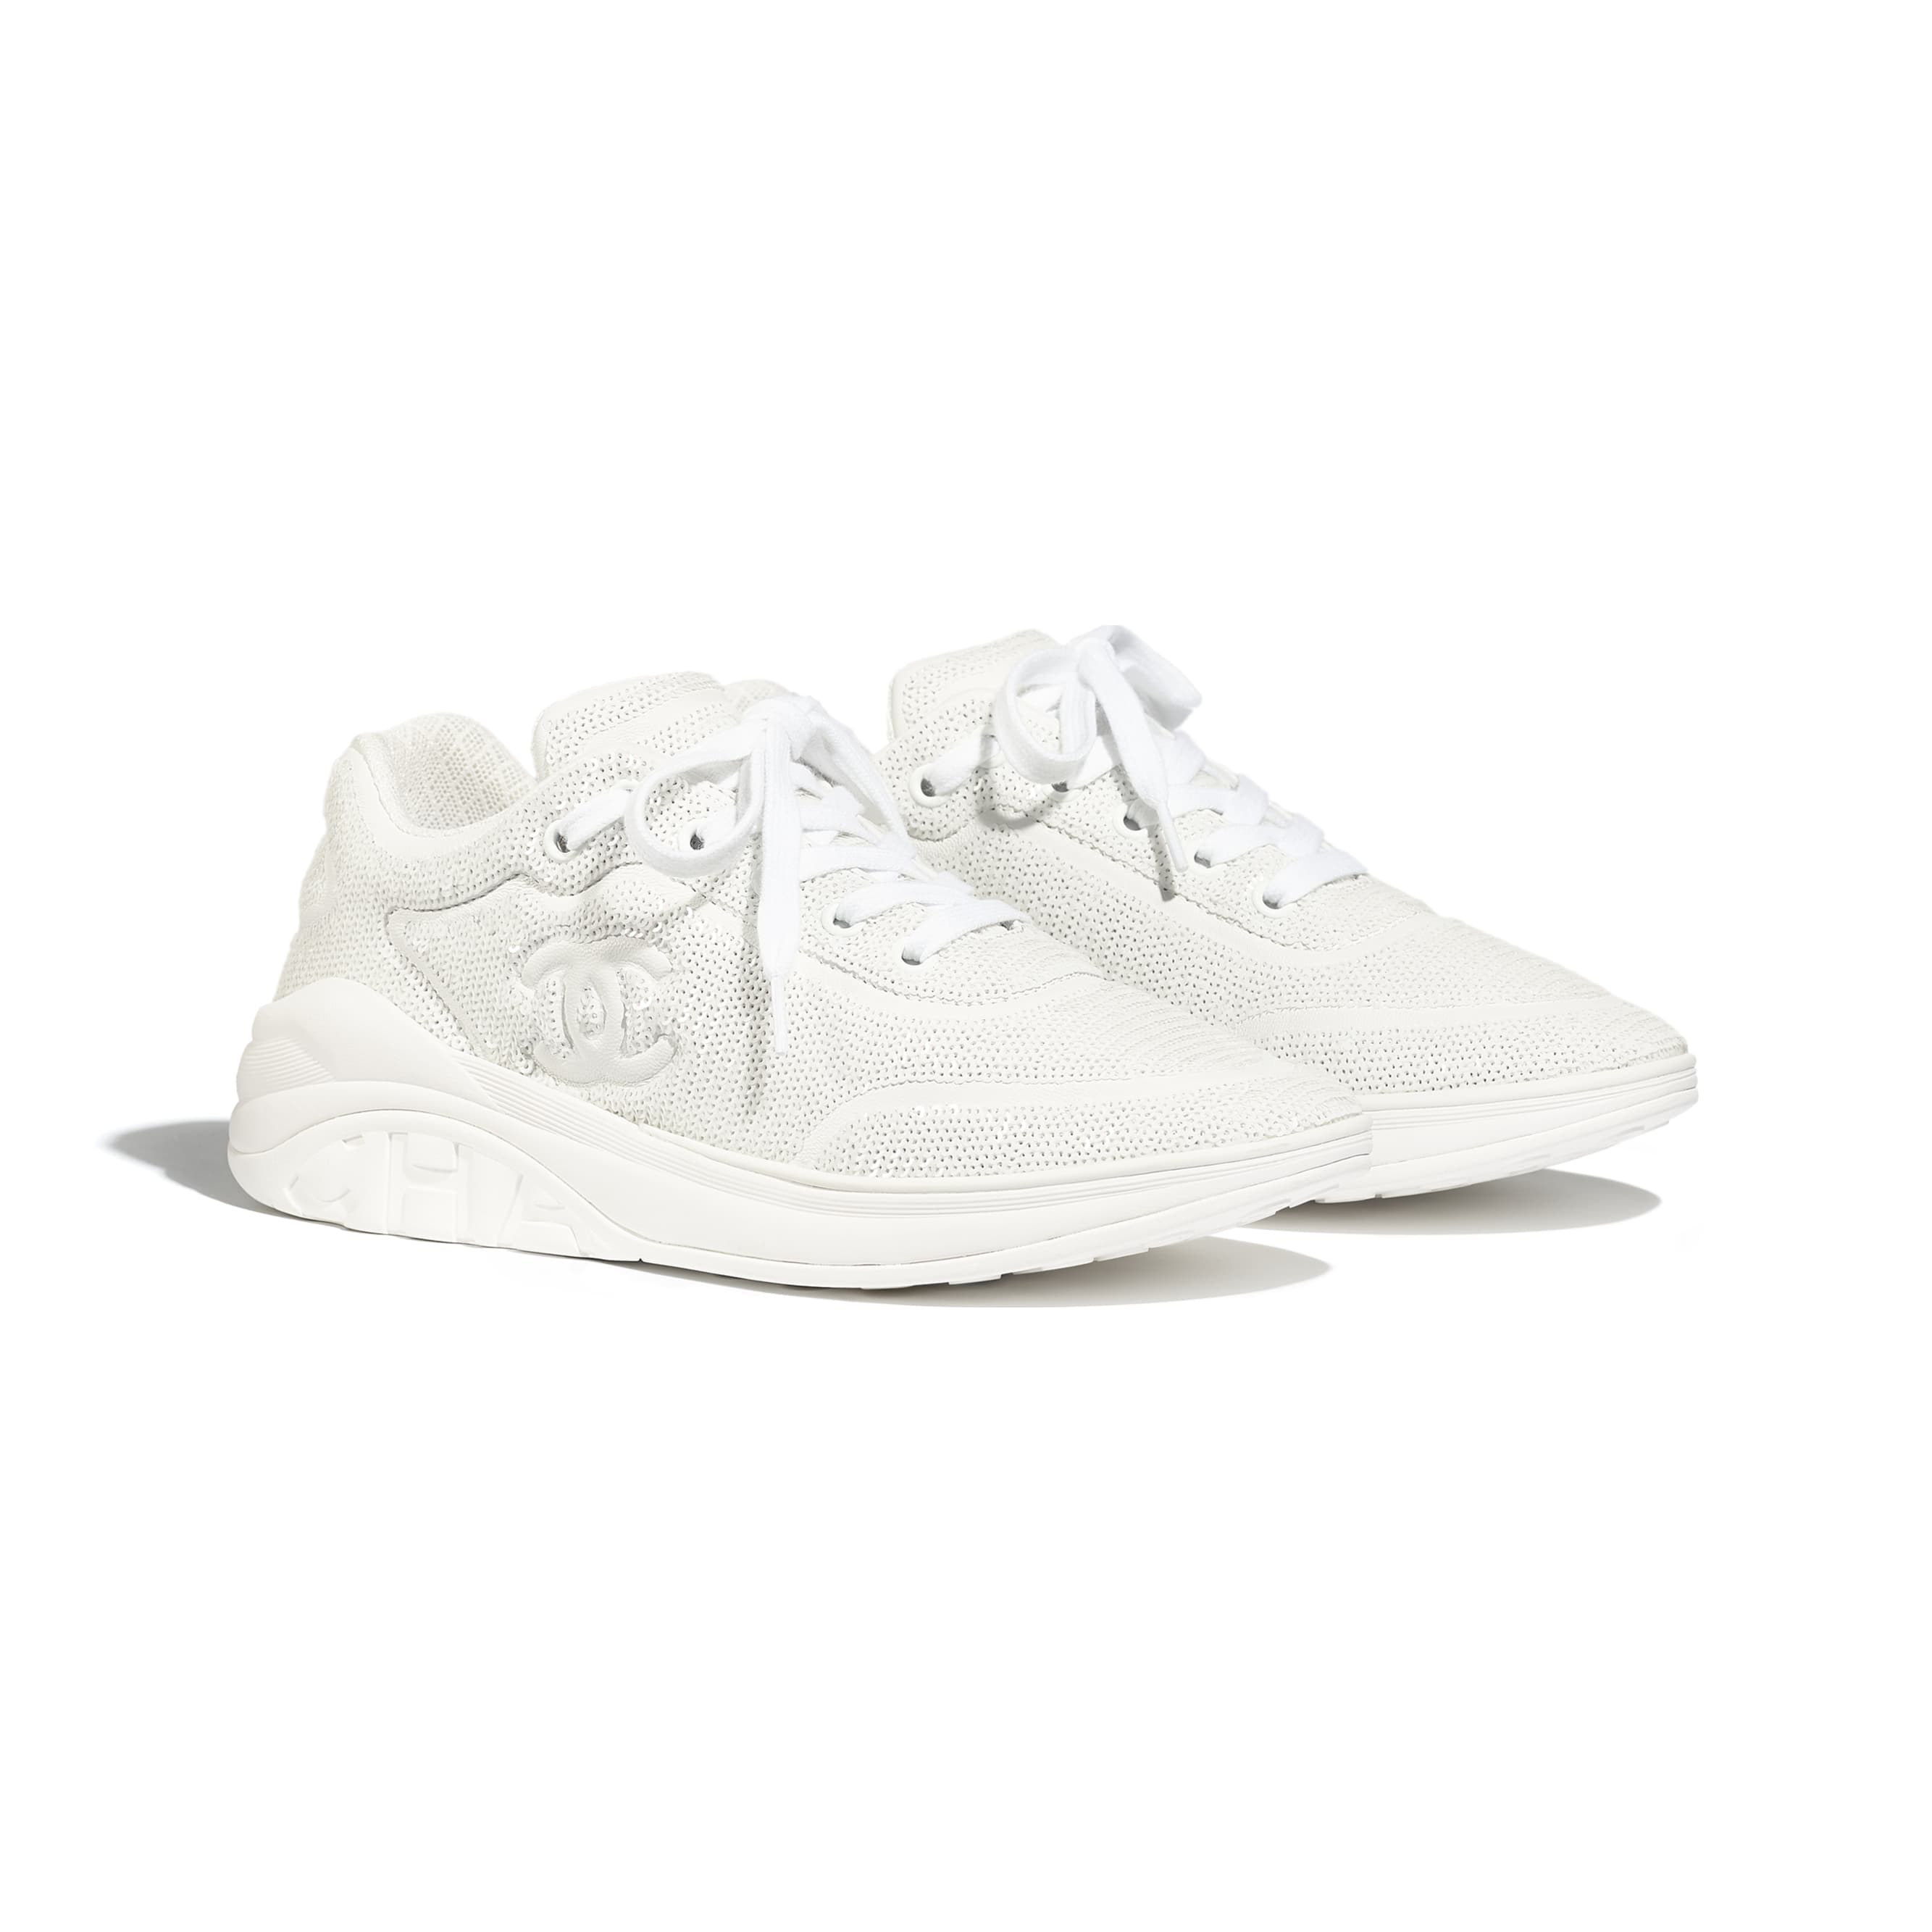 Trainers - White - Sequins - Alternative view - see standard sized version